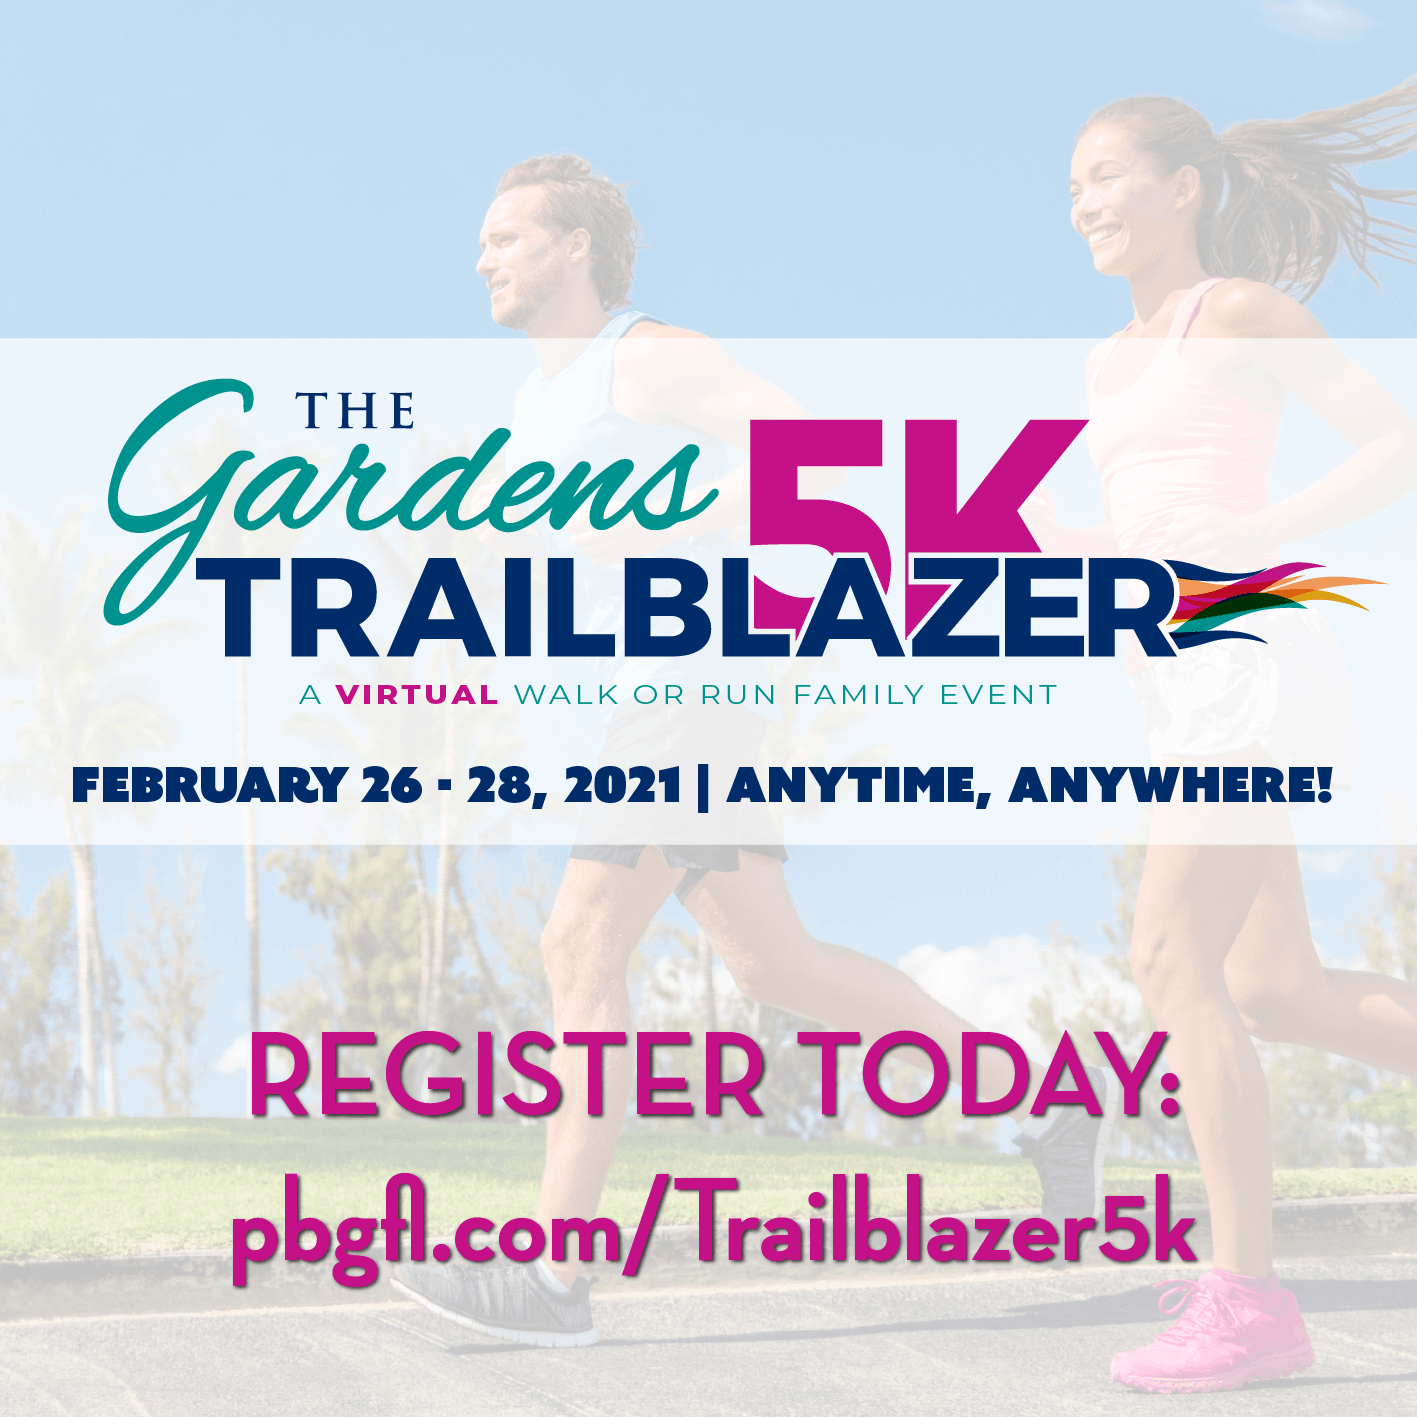 The Virtual Gardens Trailblazer. Feb. 26th-28th. Anytime, anywhere. Register today.